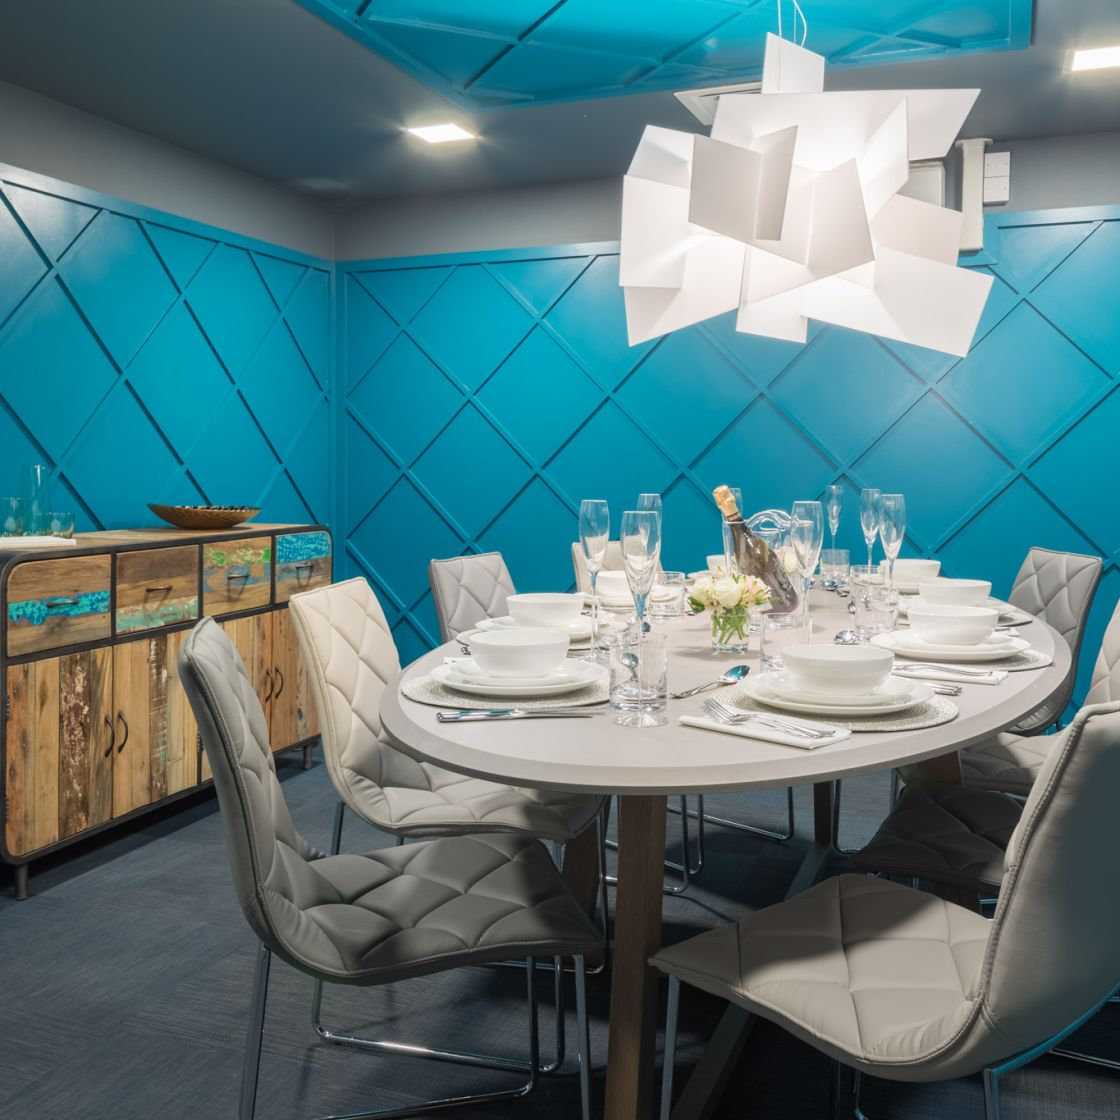 Blue Private Dining Room at IconInc, The Ascent. Student Accommodation in Liverpool